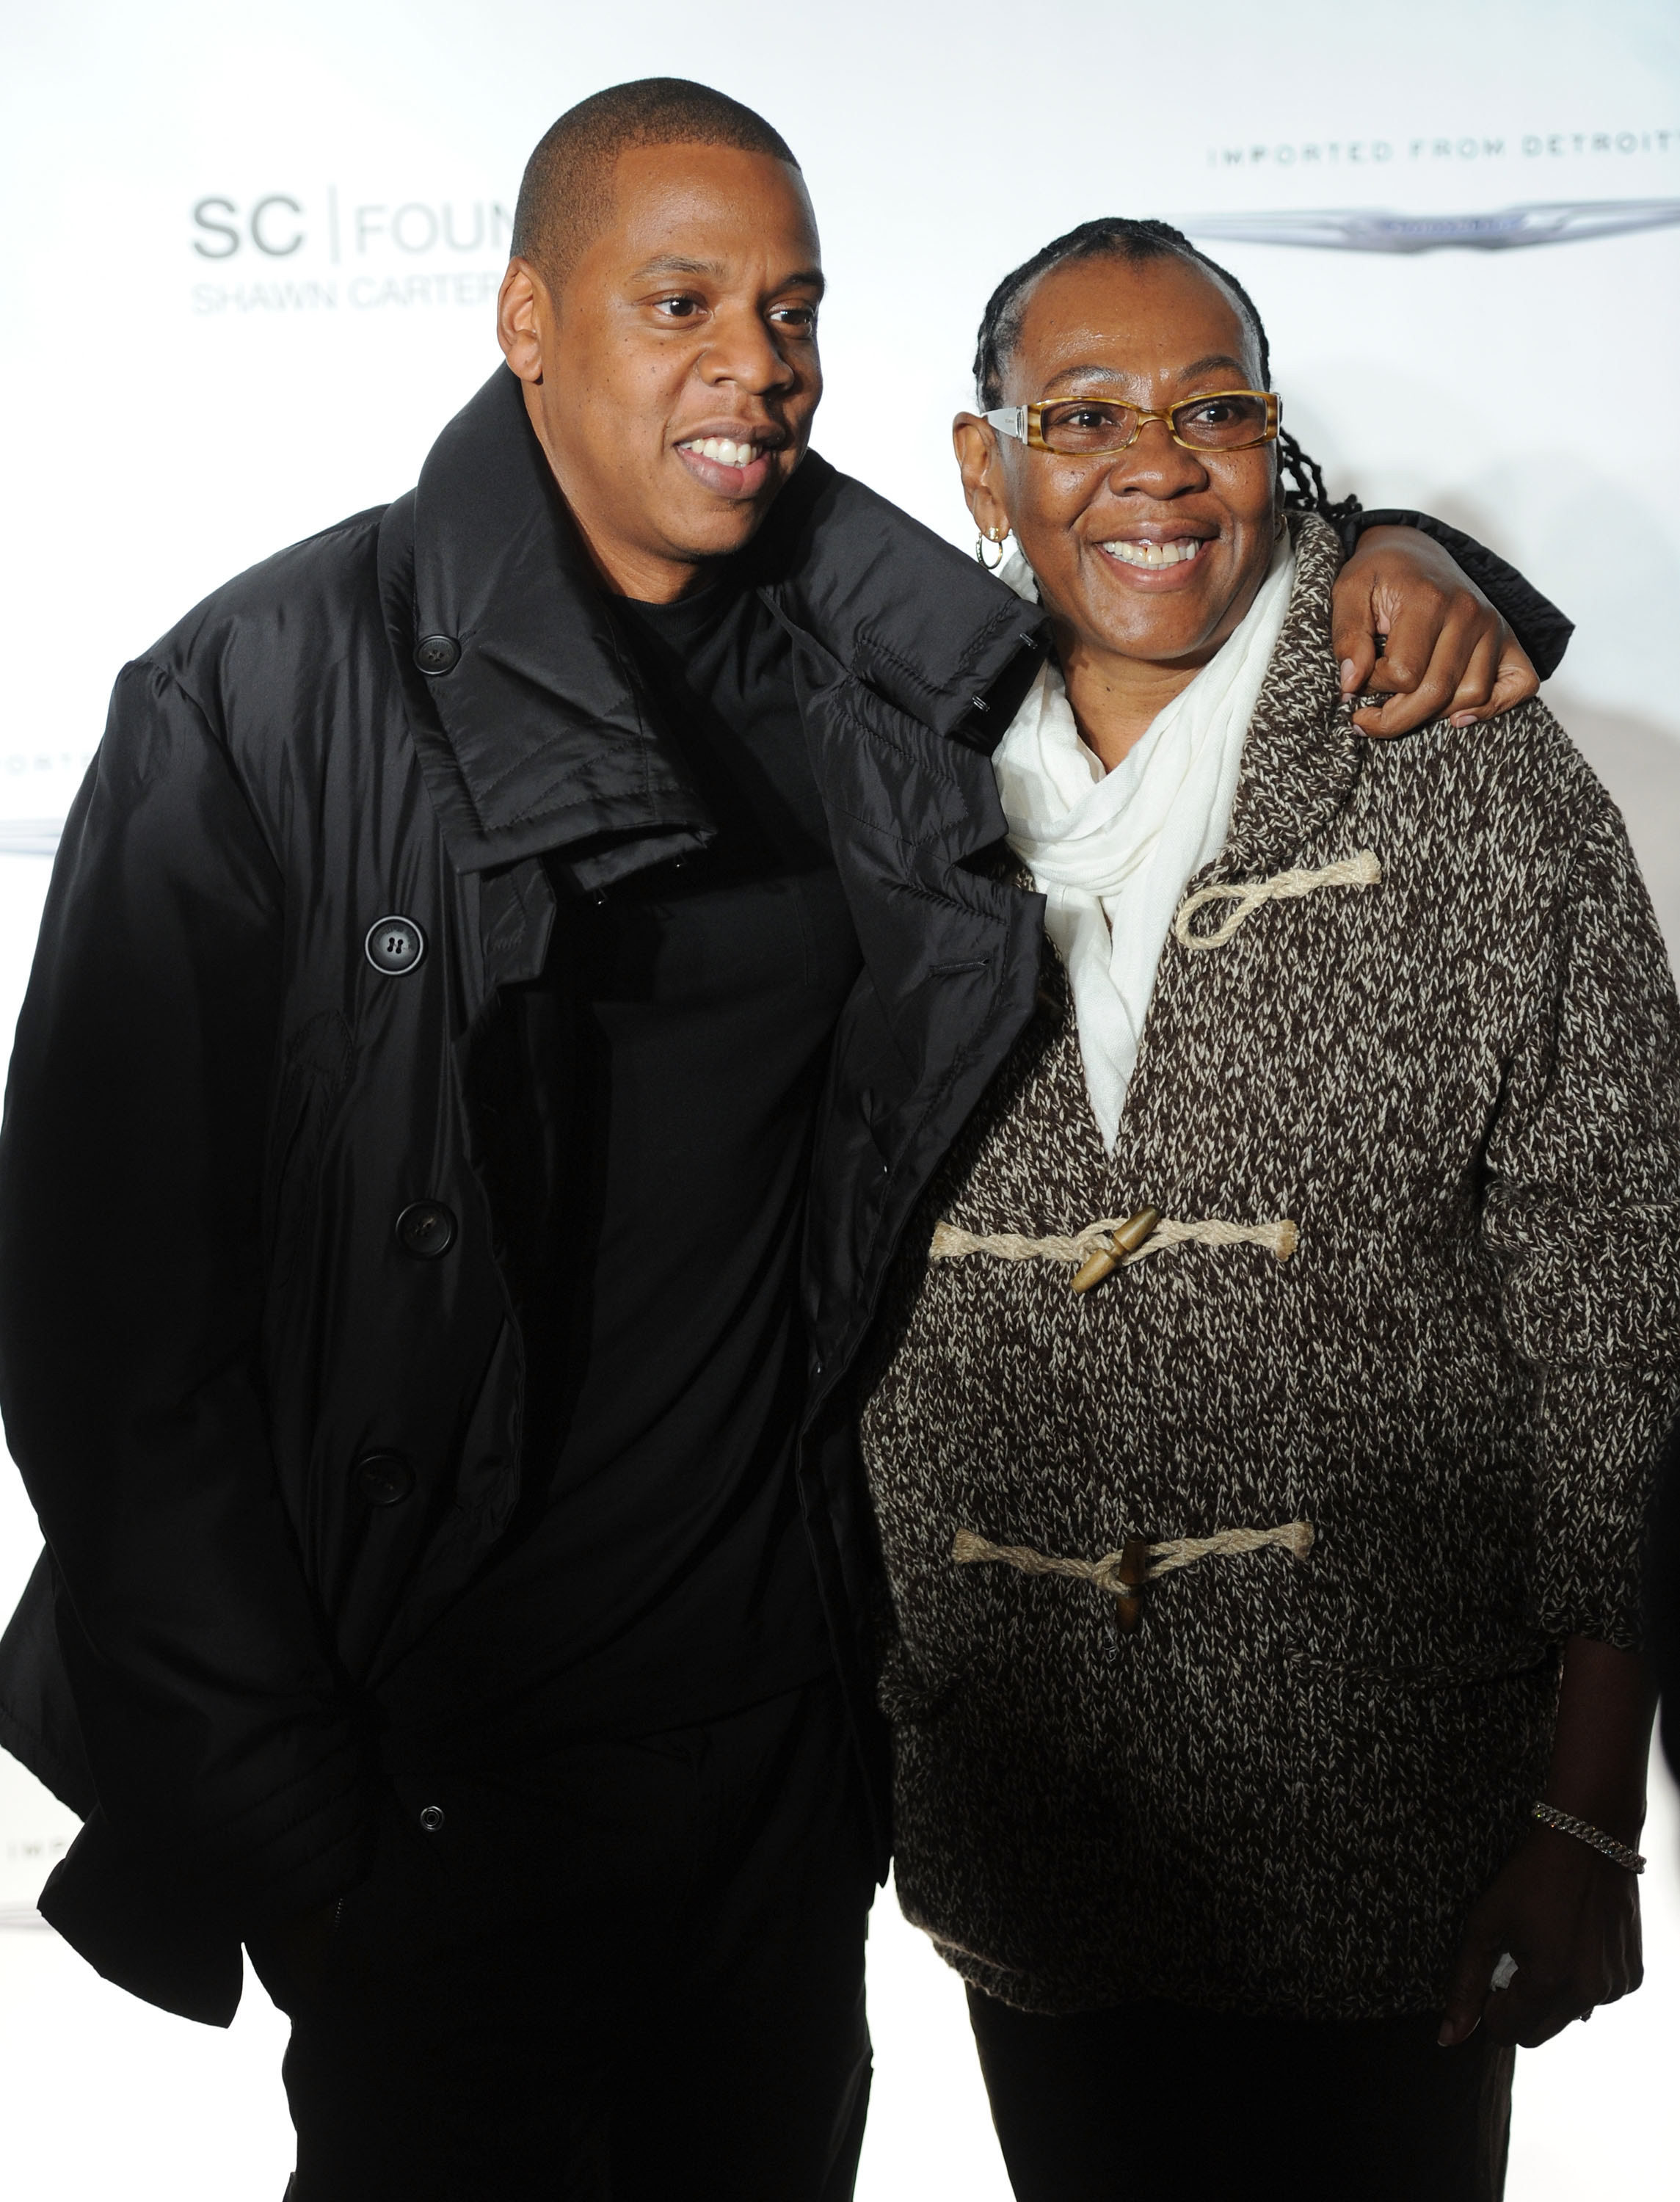 Hear Jay-Z's Mother Reveal Why She Came Out on '4:44' Song ...